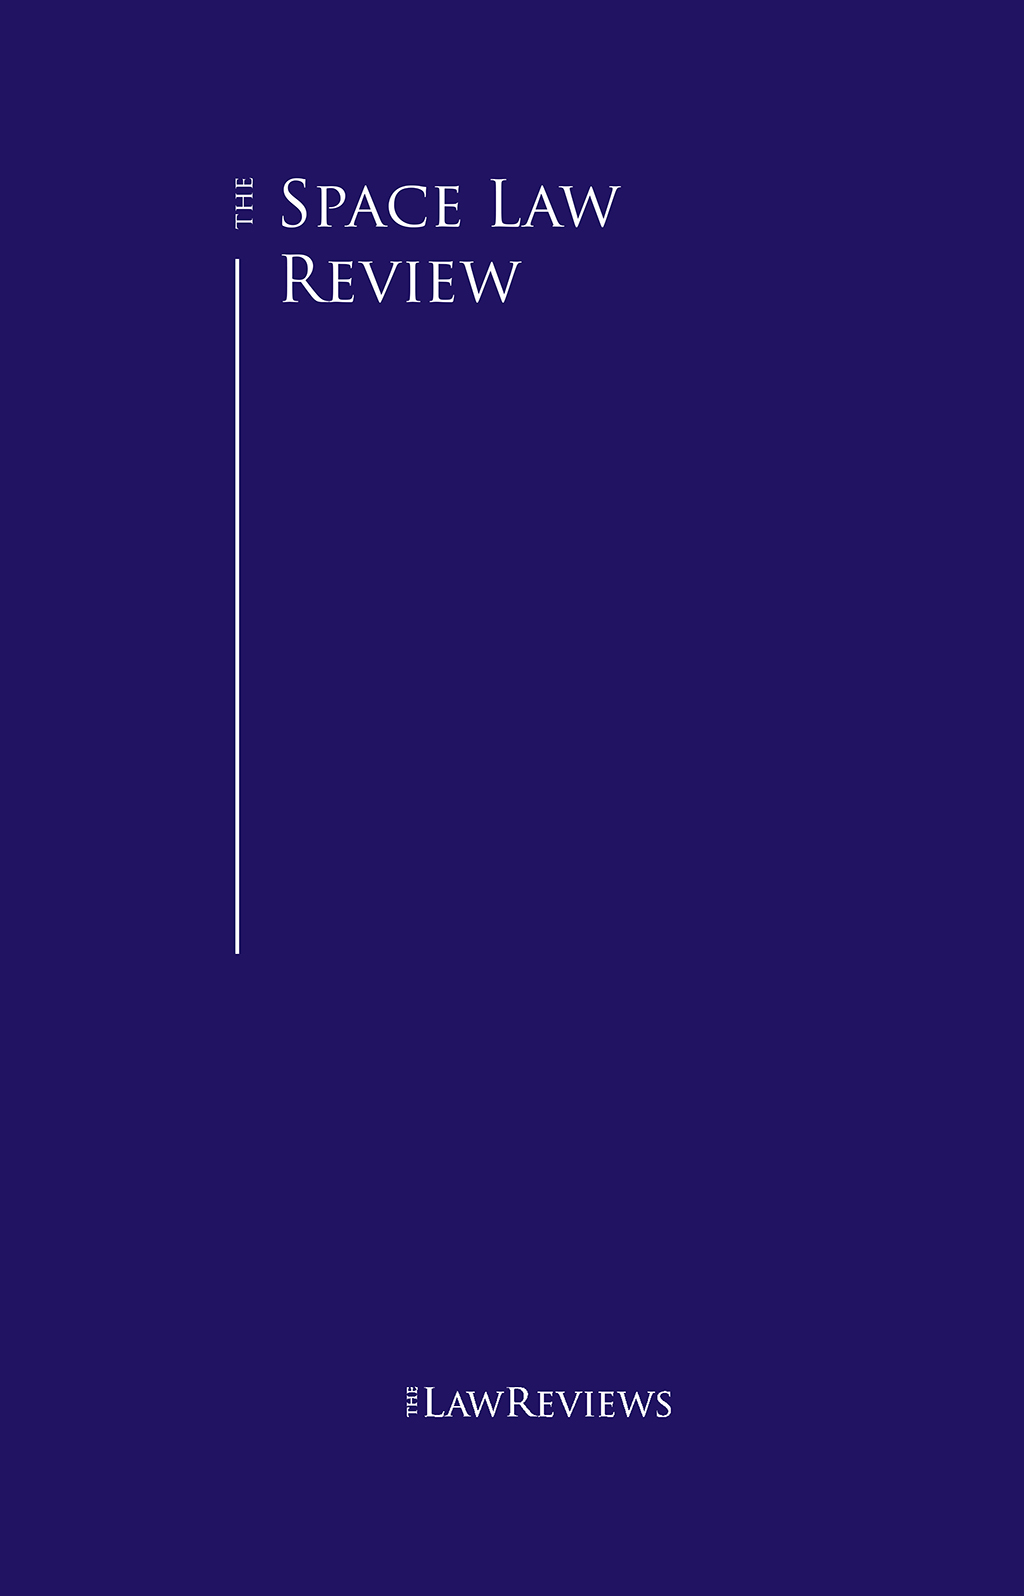 The Space Law Review